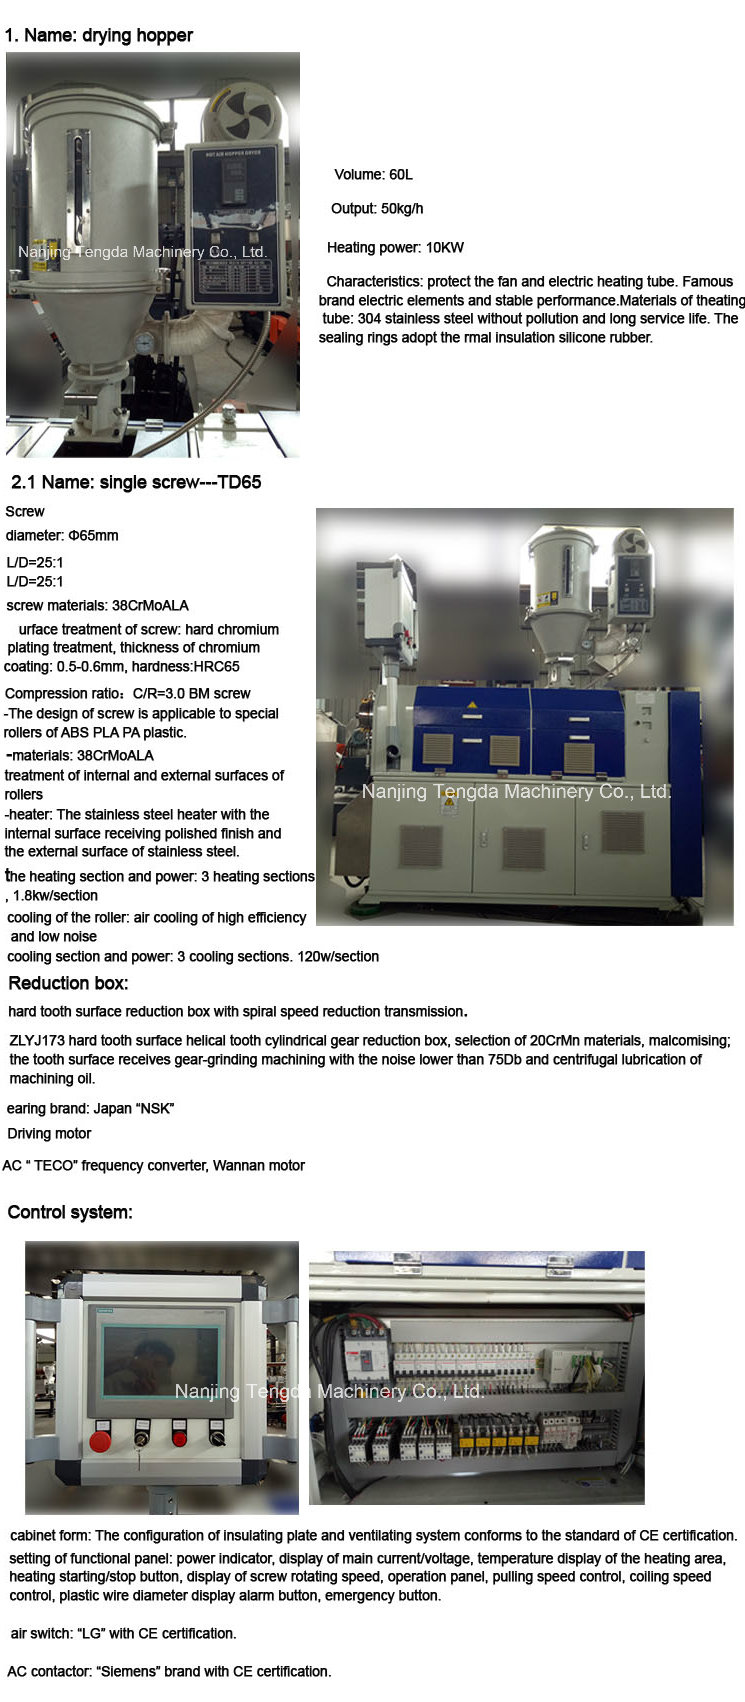 Twin Screw Extruder Machine for 3D Printer Filament Materials